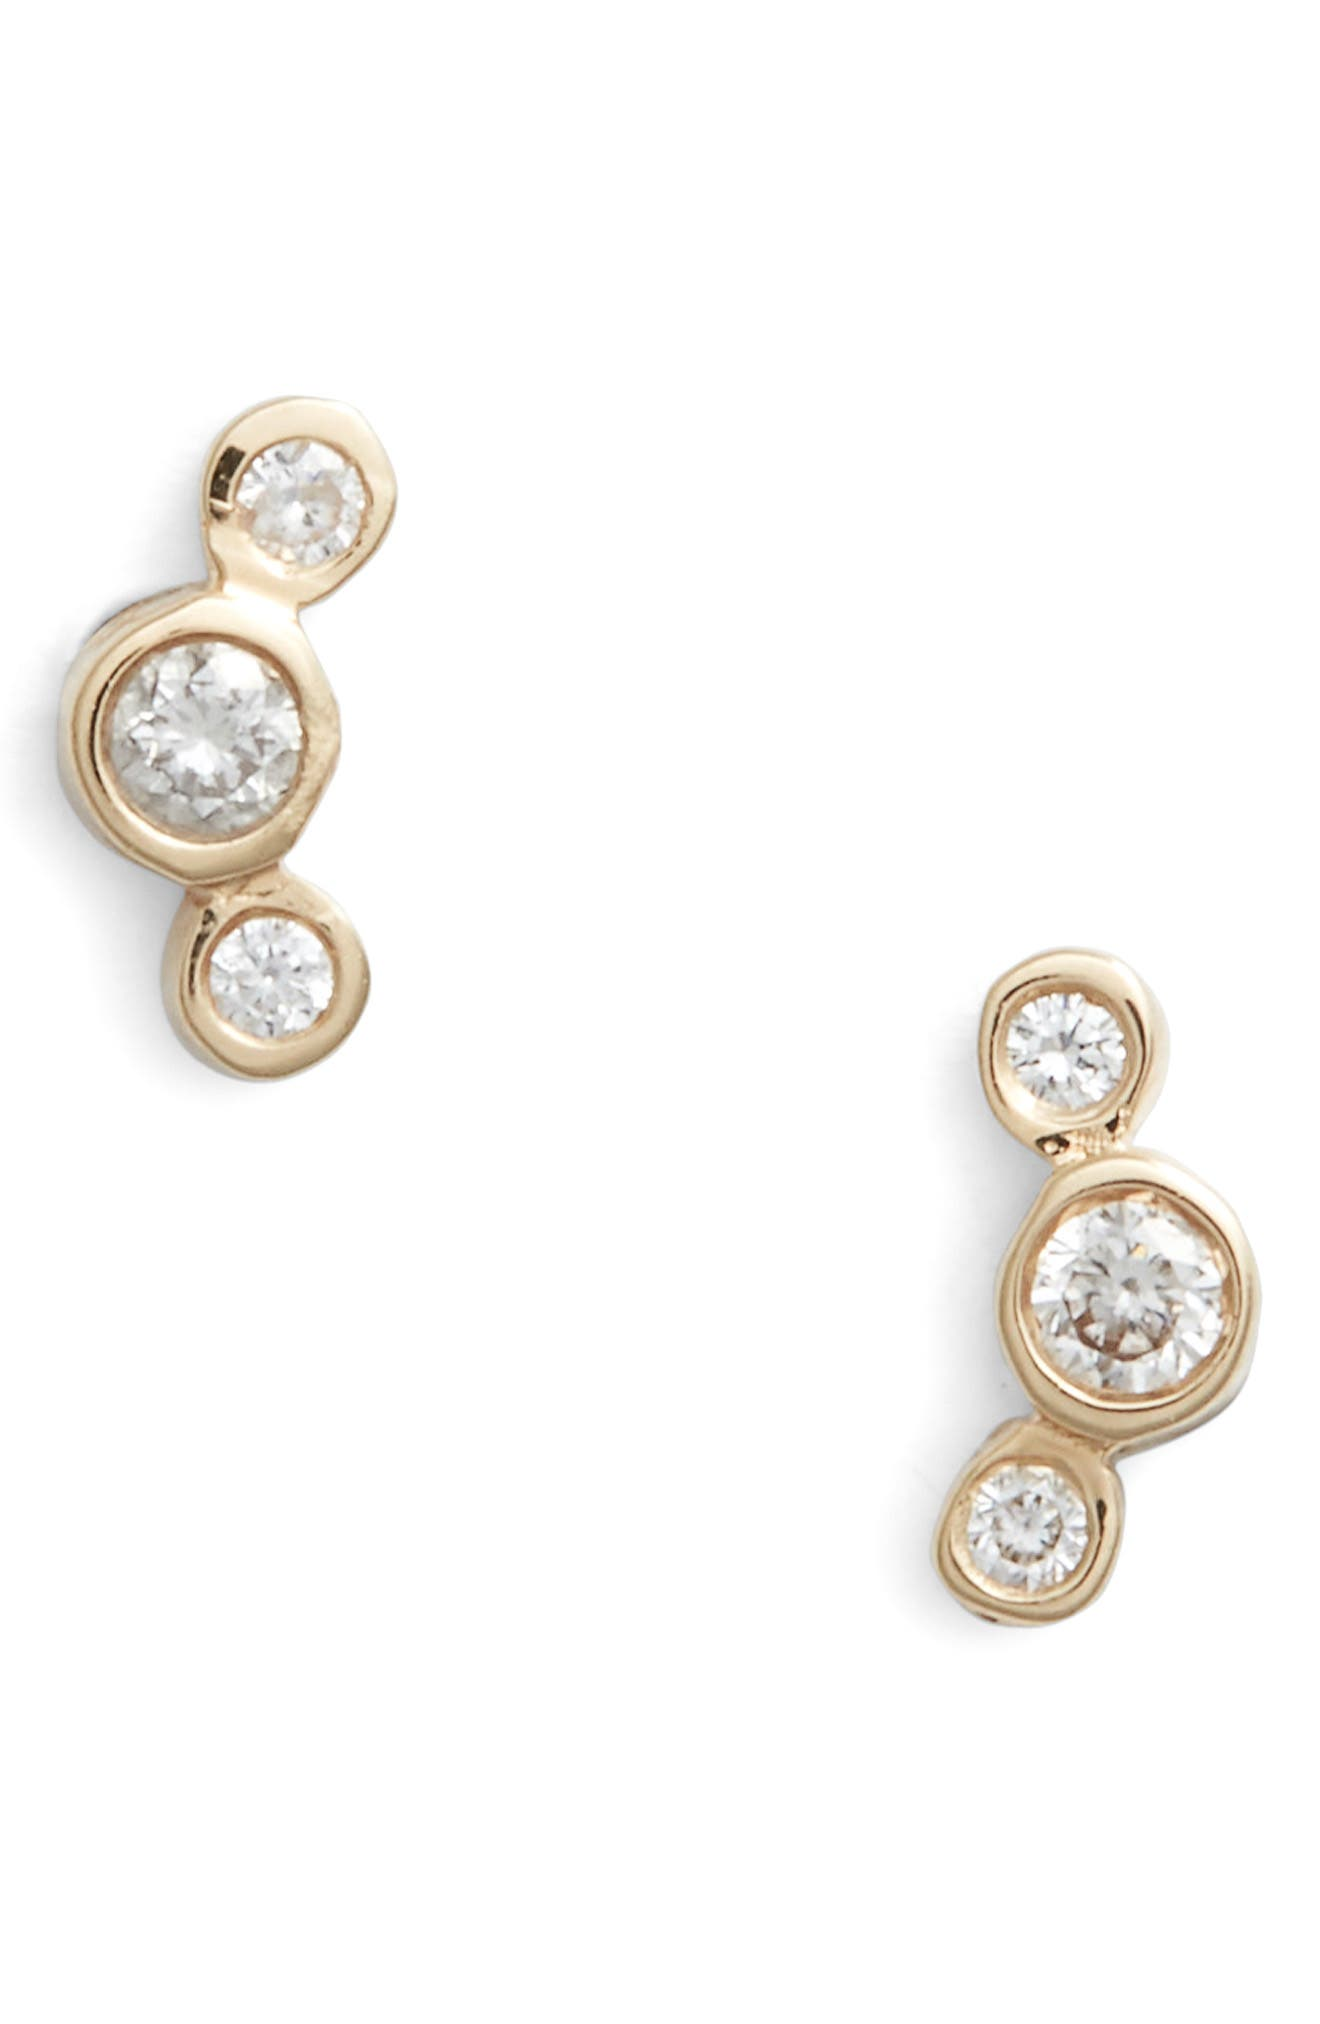 Curved 3-Diamond Stud Earrings,                         Main,                         color, Yellow Gold